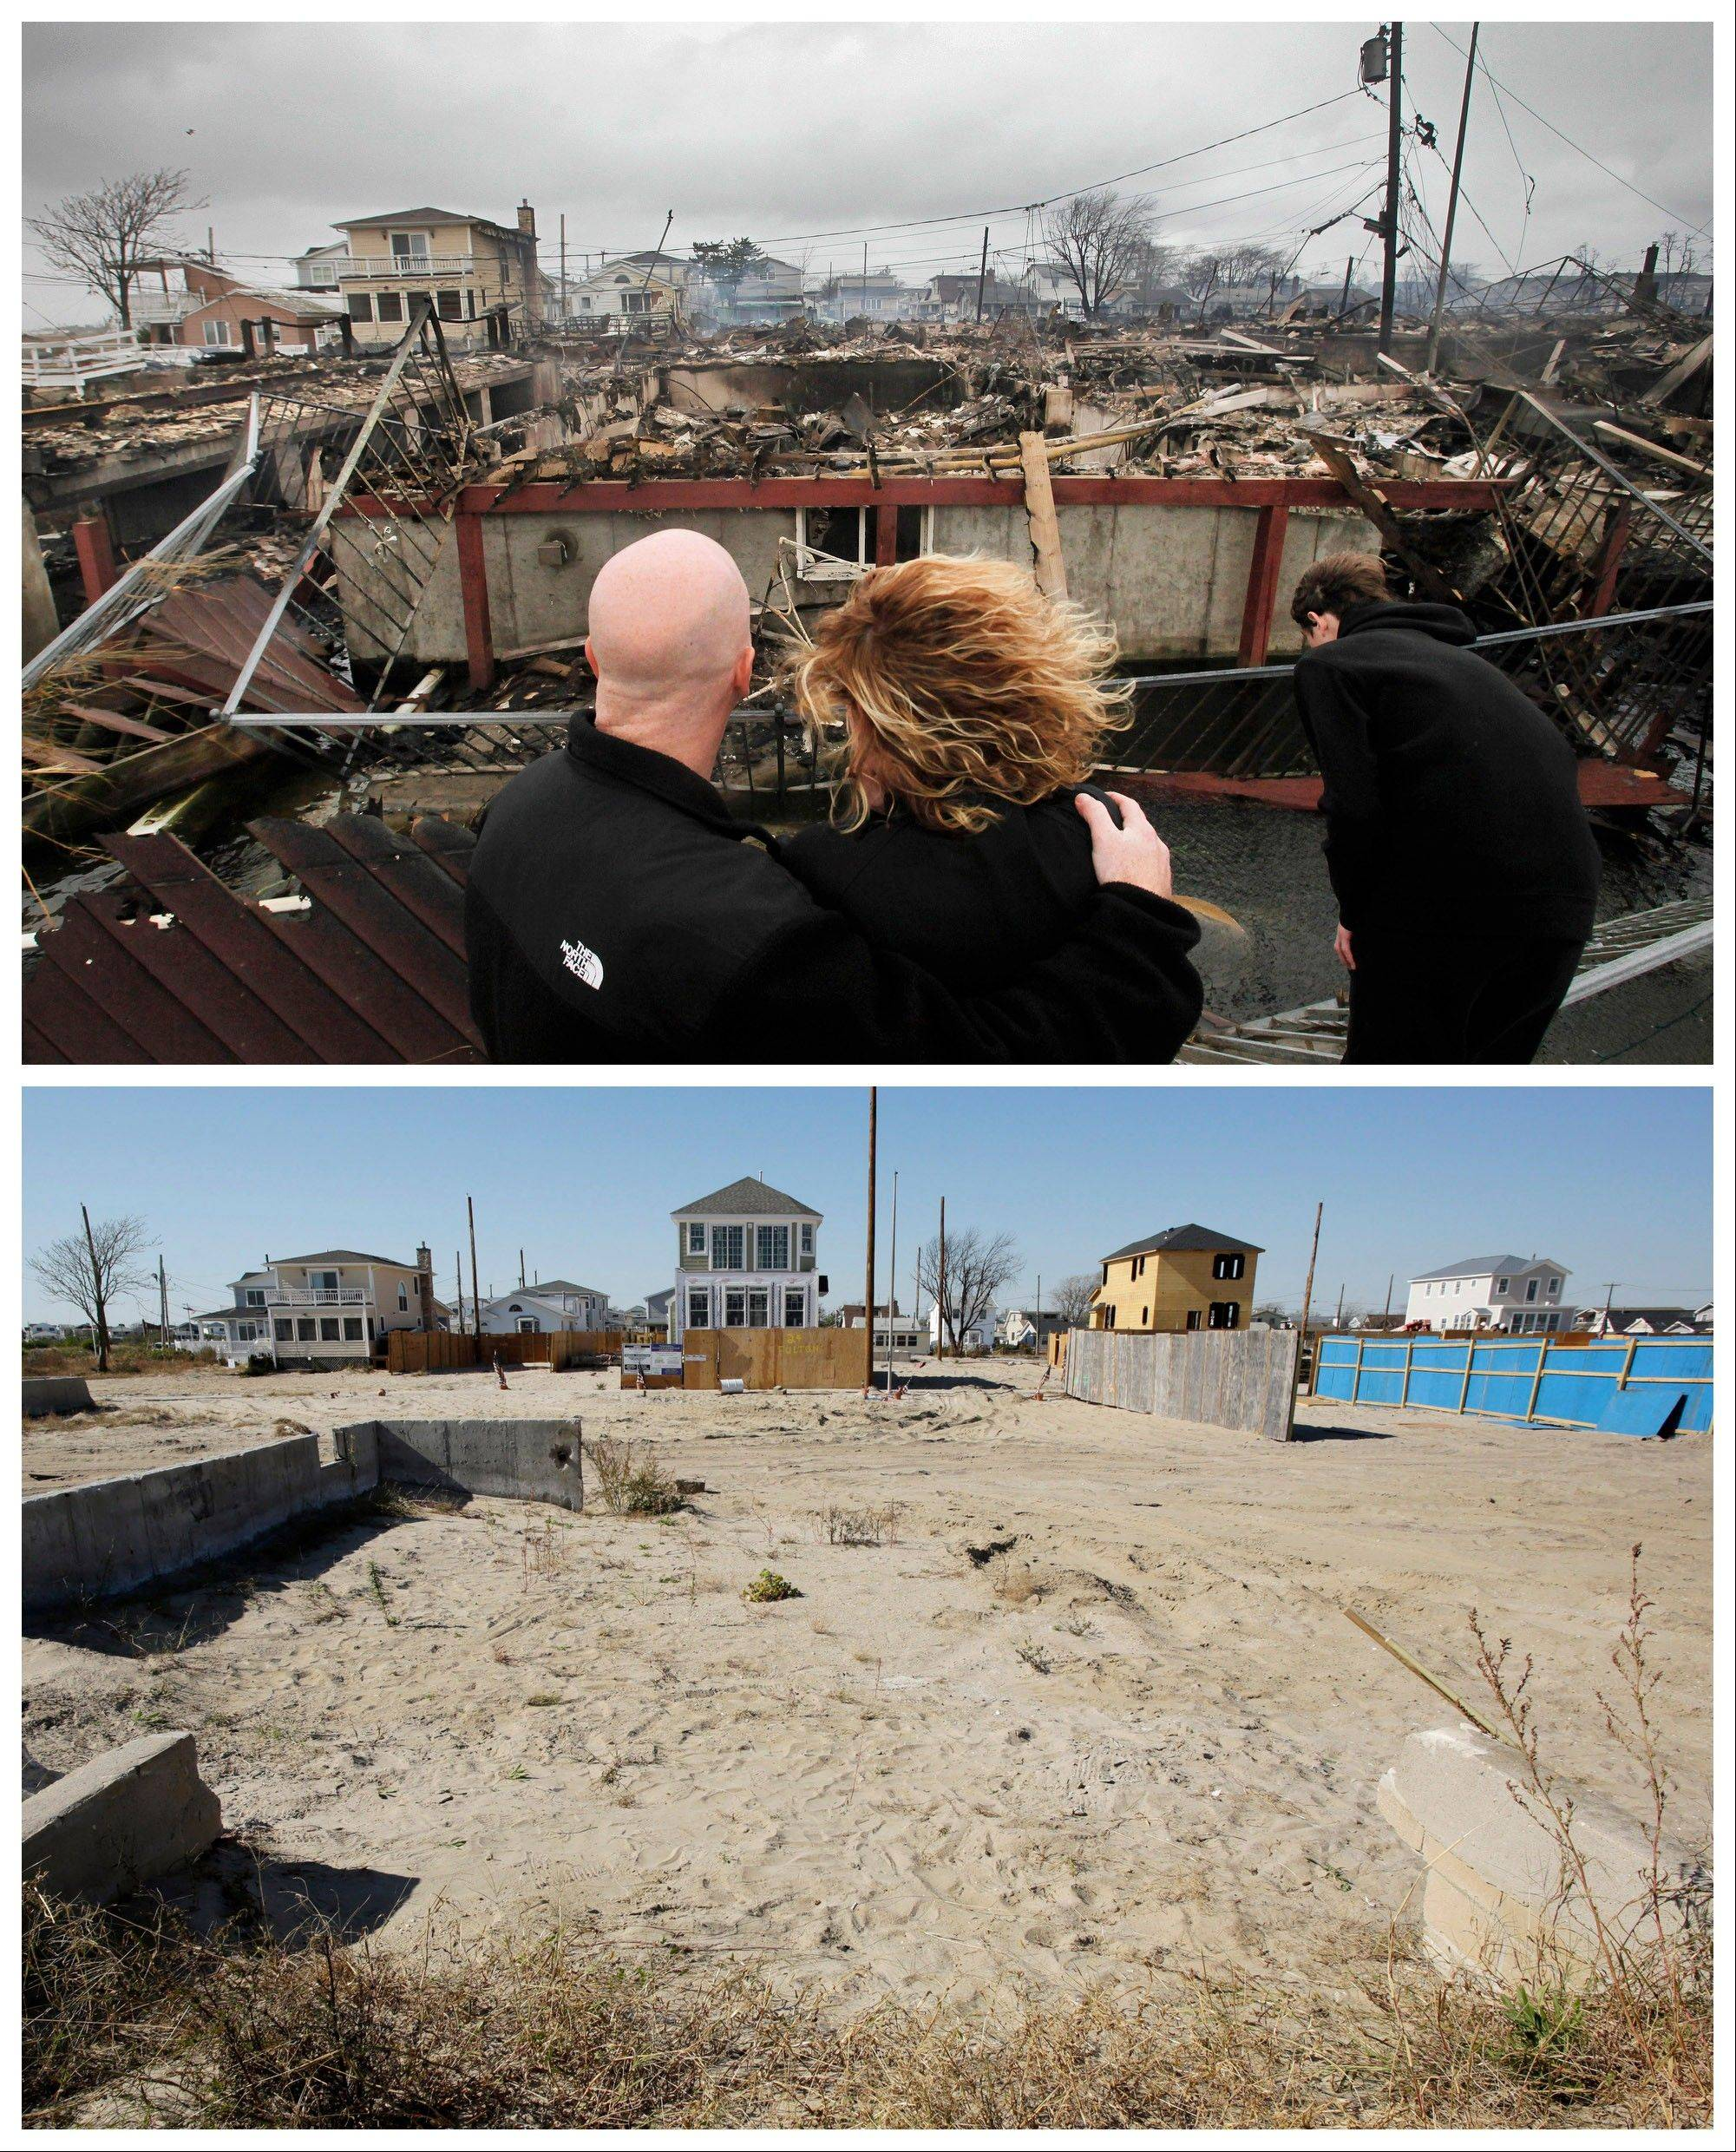 This combination of Tuesday, Oct. 30, 2012 and Monday, Oct. 21, 2013 photos shows Robert Connolly and his wife Laura as they survey the remains of the home owned by her parents that burned to the ground during Superstorm Sandy.